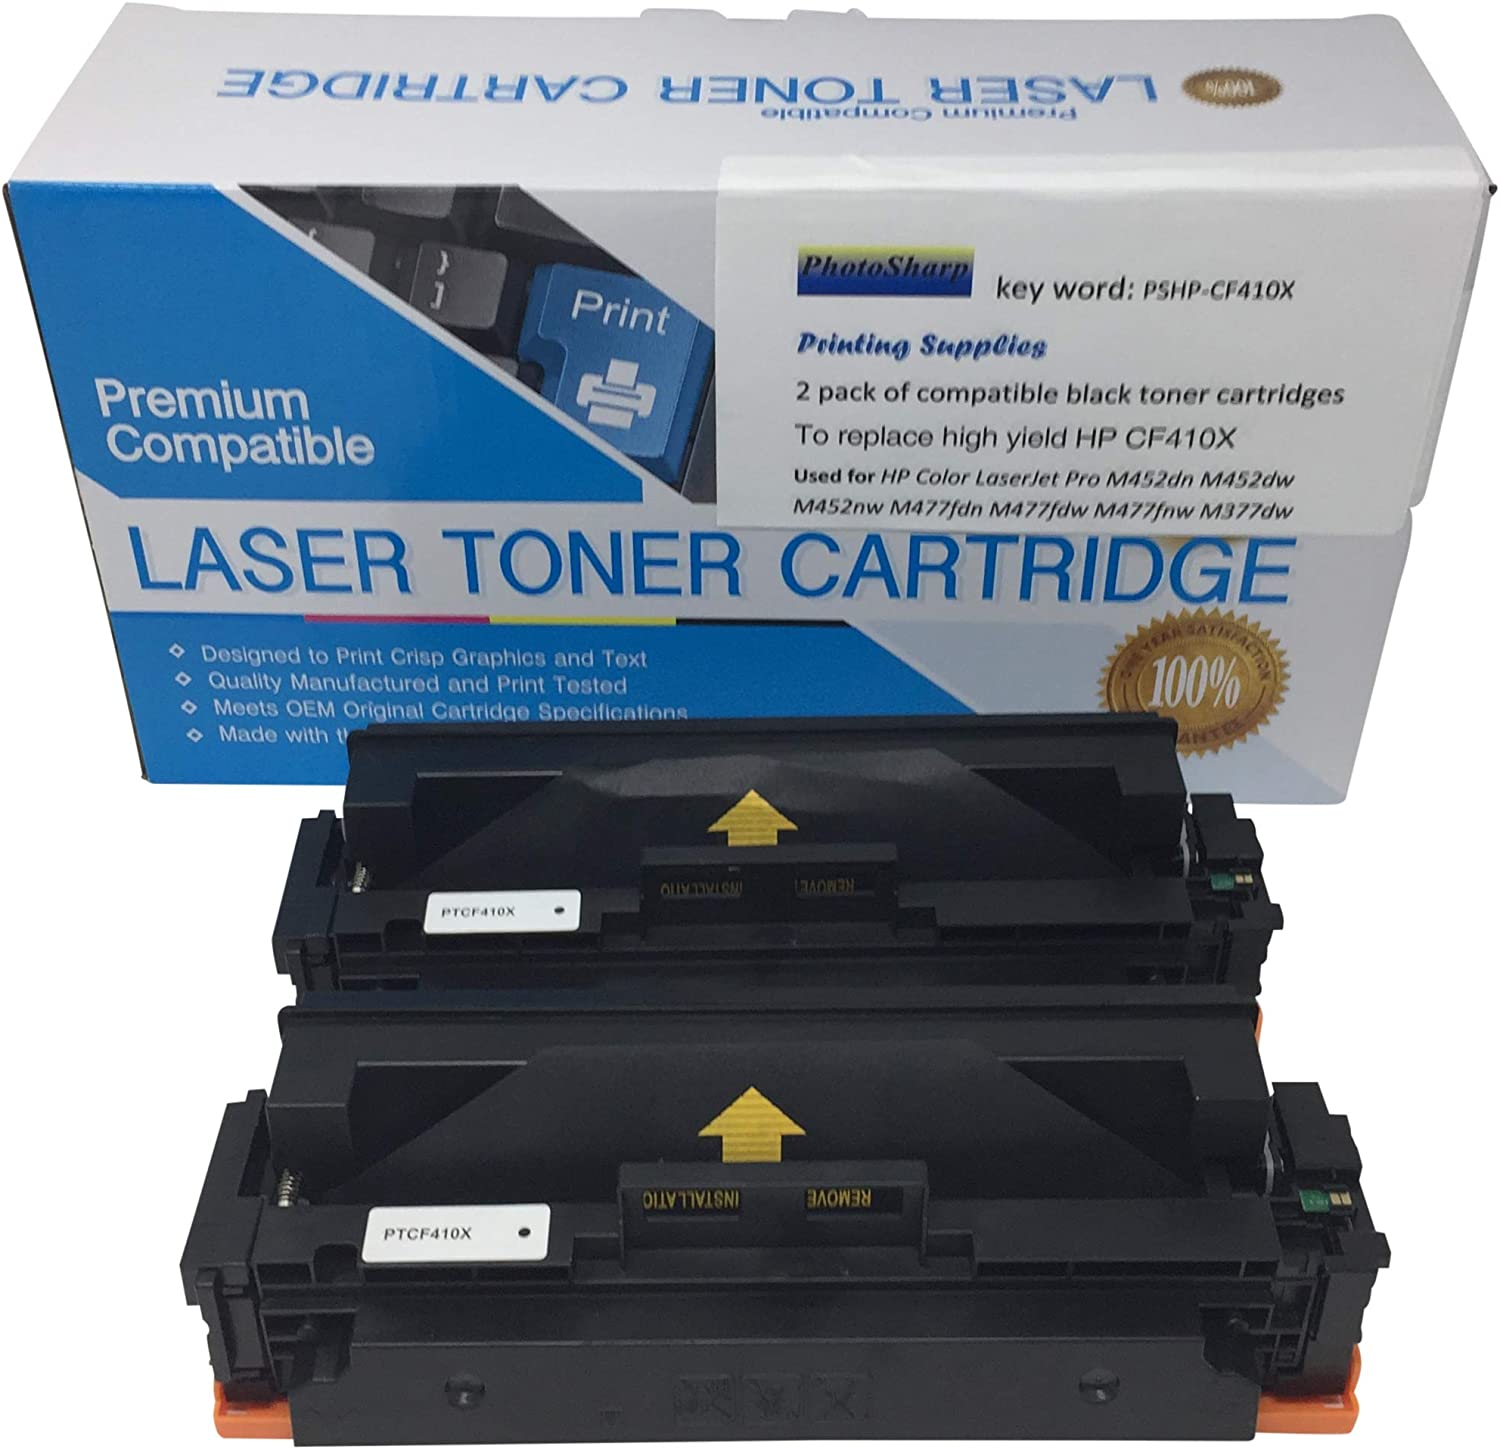 2 Photosharp Black M542 M377dw Ink Toner Cartridges CF410XD replacement for HP 41OX/A CF410X CF410XD CF410A Laserjet Pro M542 MFP M377dw all in one color Laser Printer